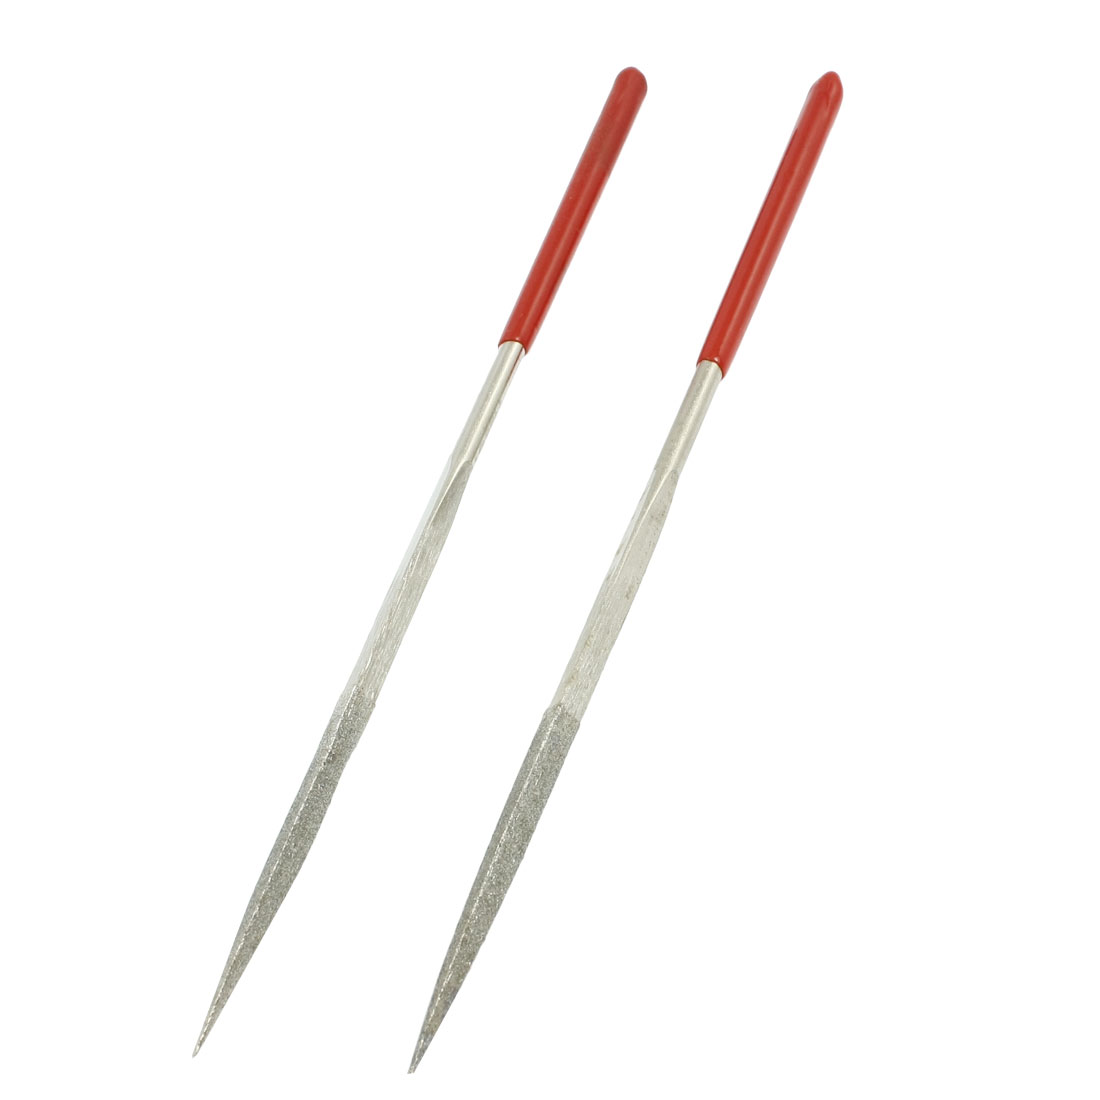 2 Pcs Woodwork 4mm x 163mm Three Square Triangle Needle Files